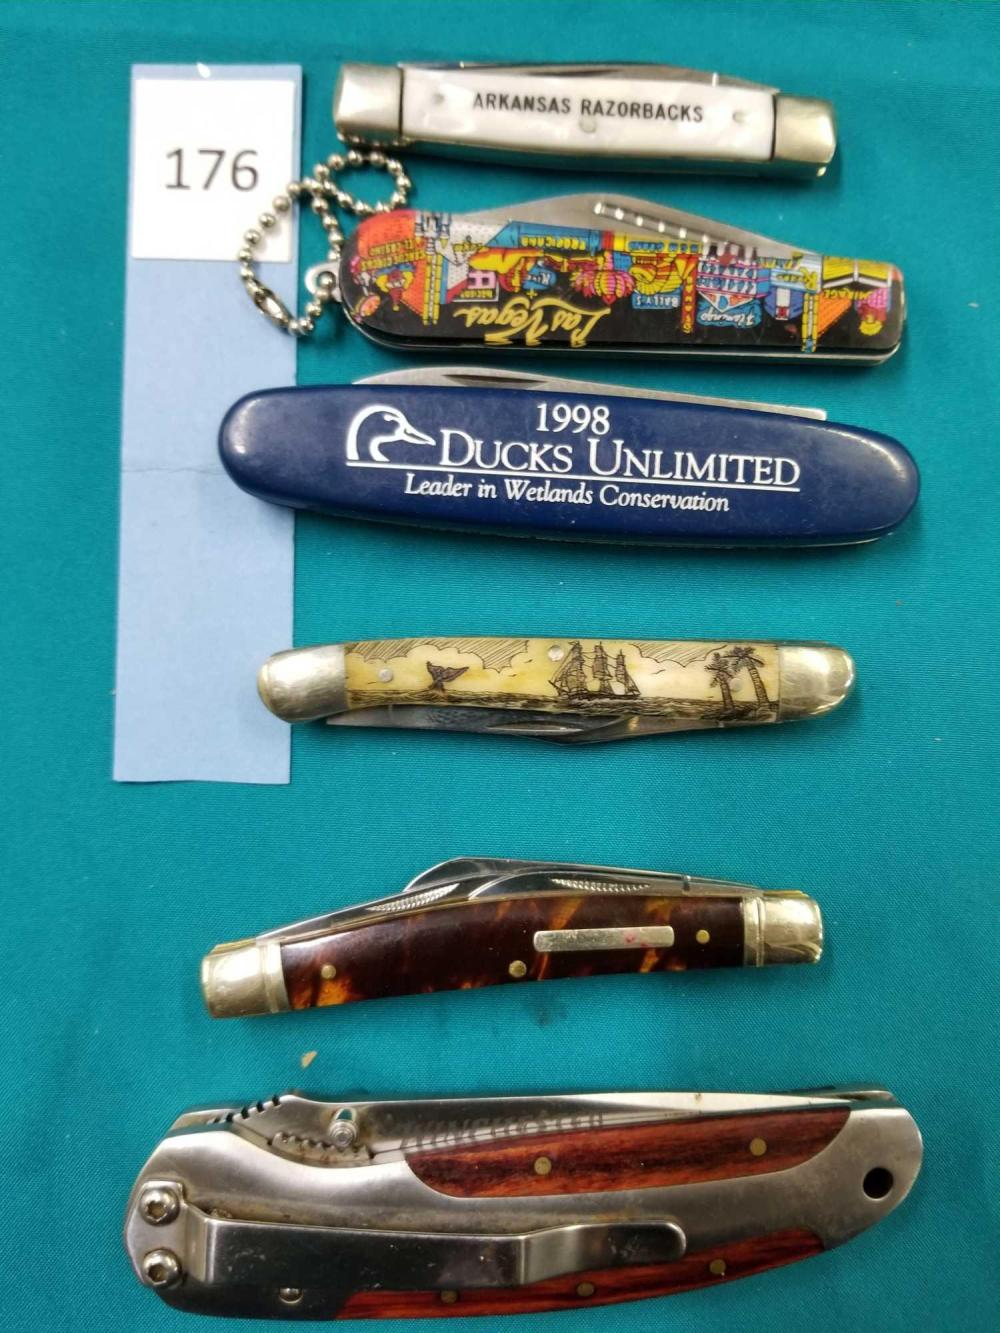 DUCKS UNLIMITED, FROST, CASE RAZORBACK, ROUGH RIDER, WINCHESTER FOLDING KNIVES - 6 ITEMS